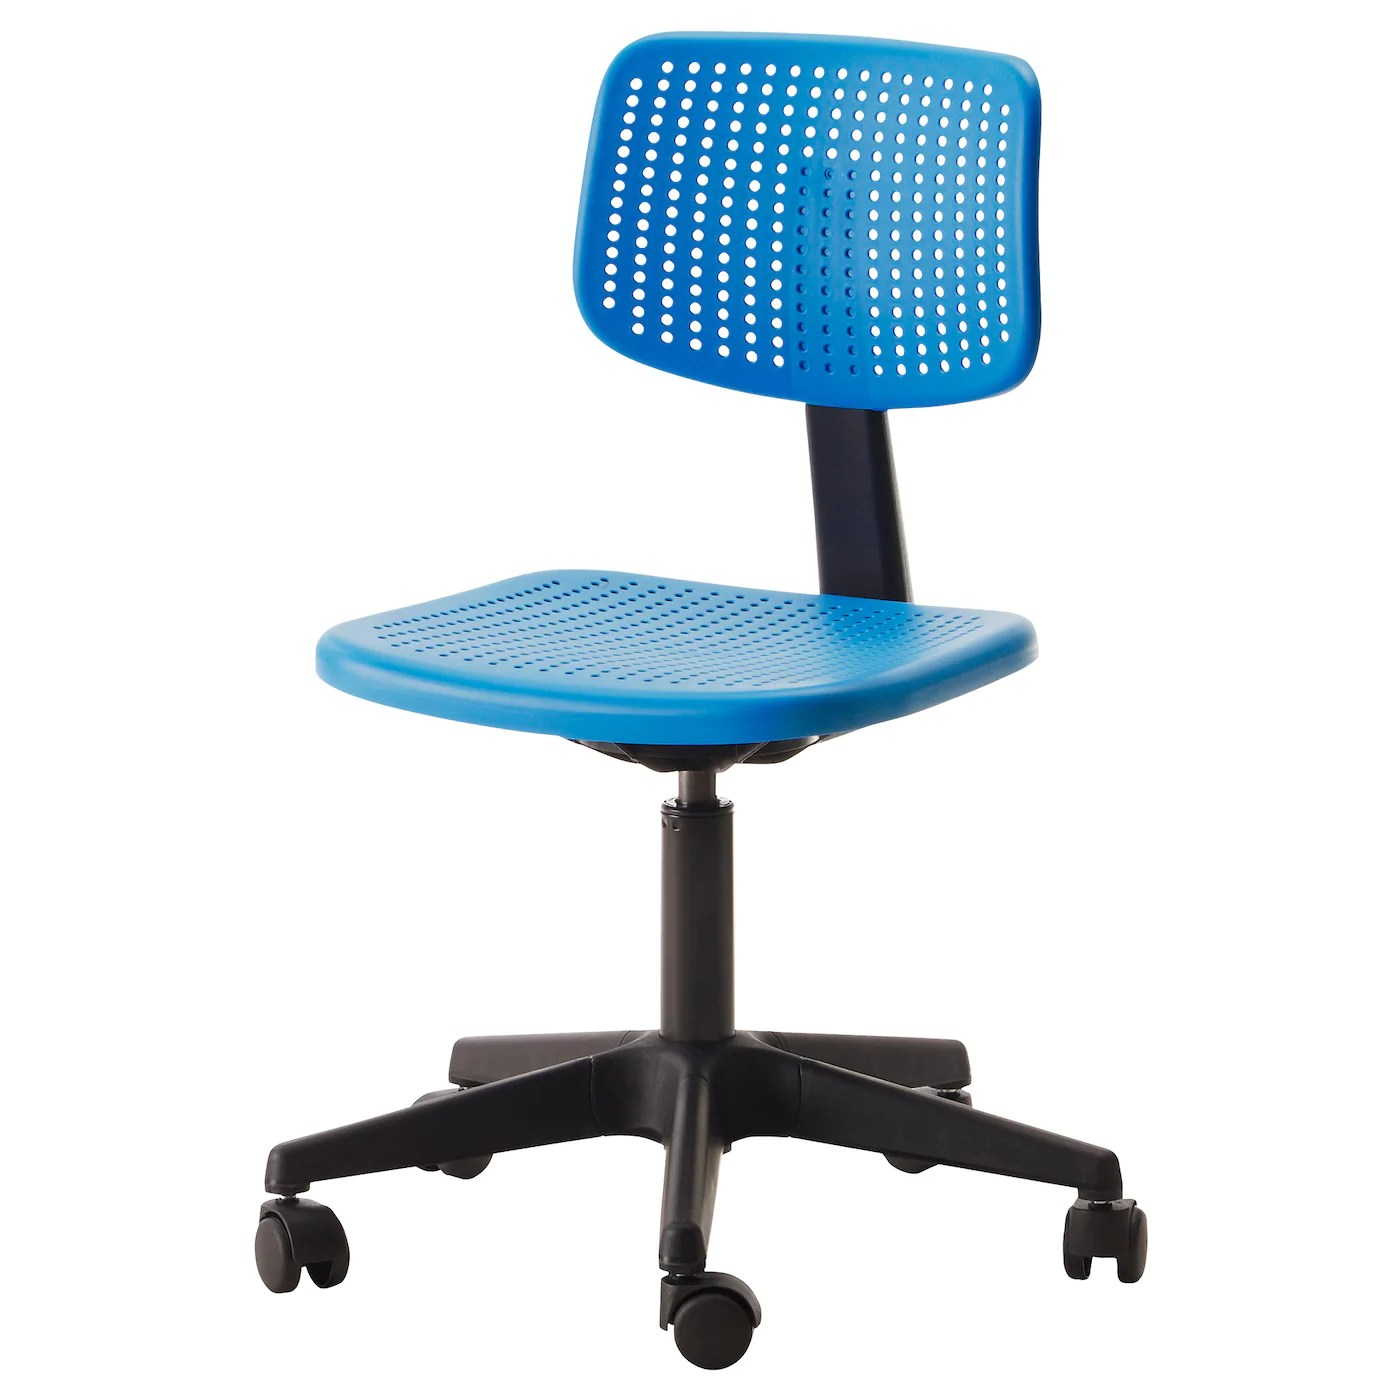 desk chair blue teal alrik swivel ikea